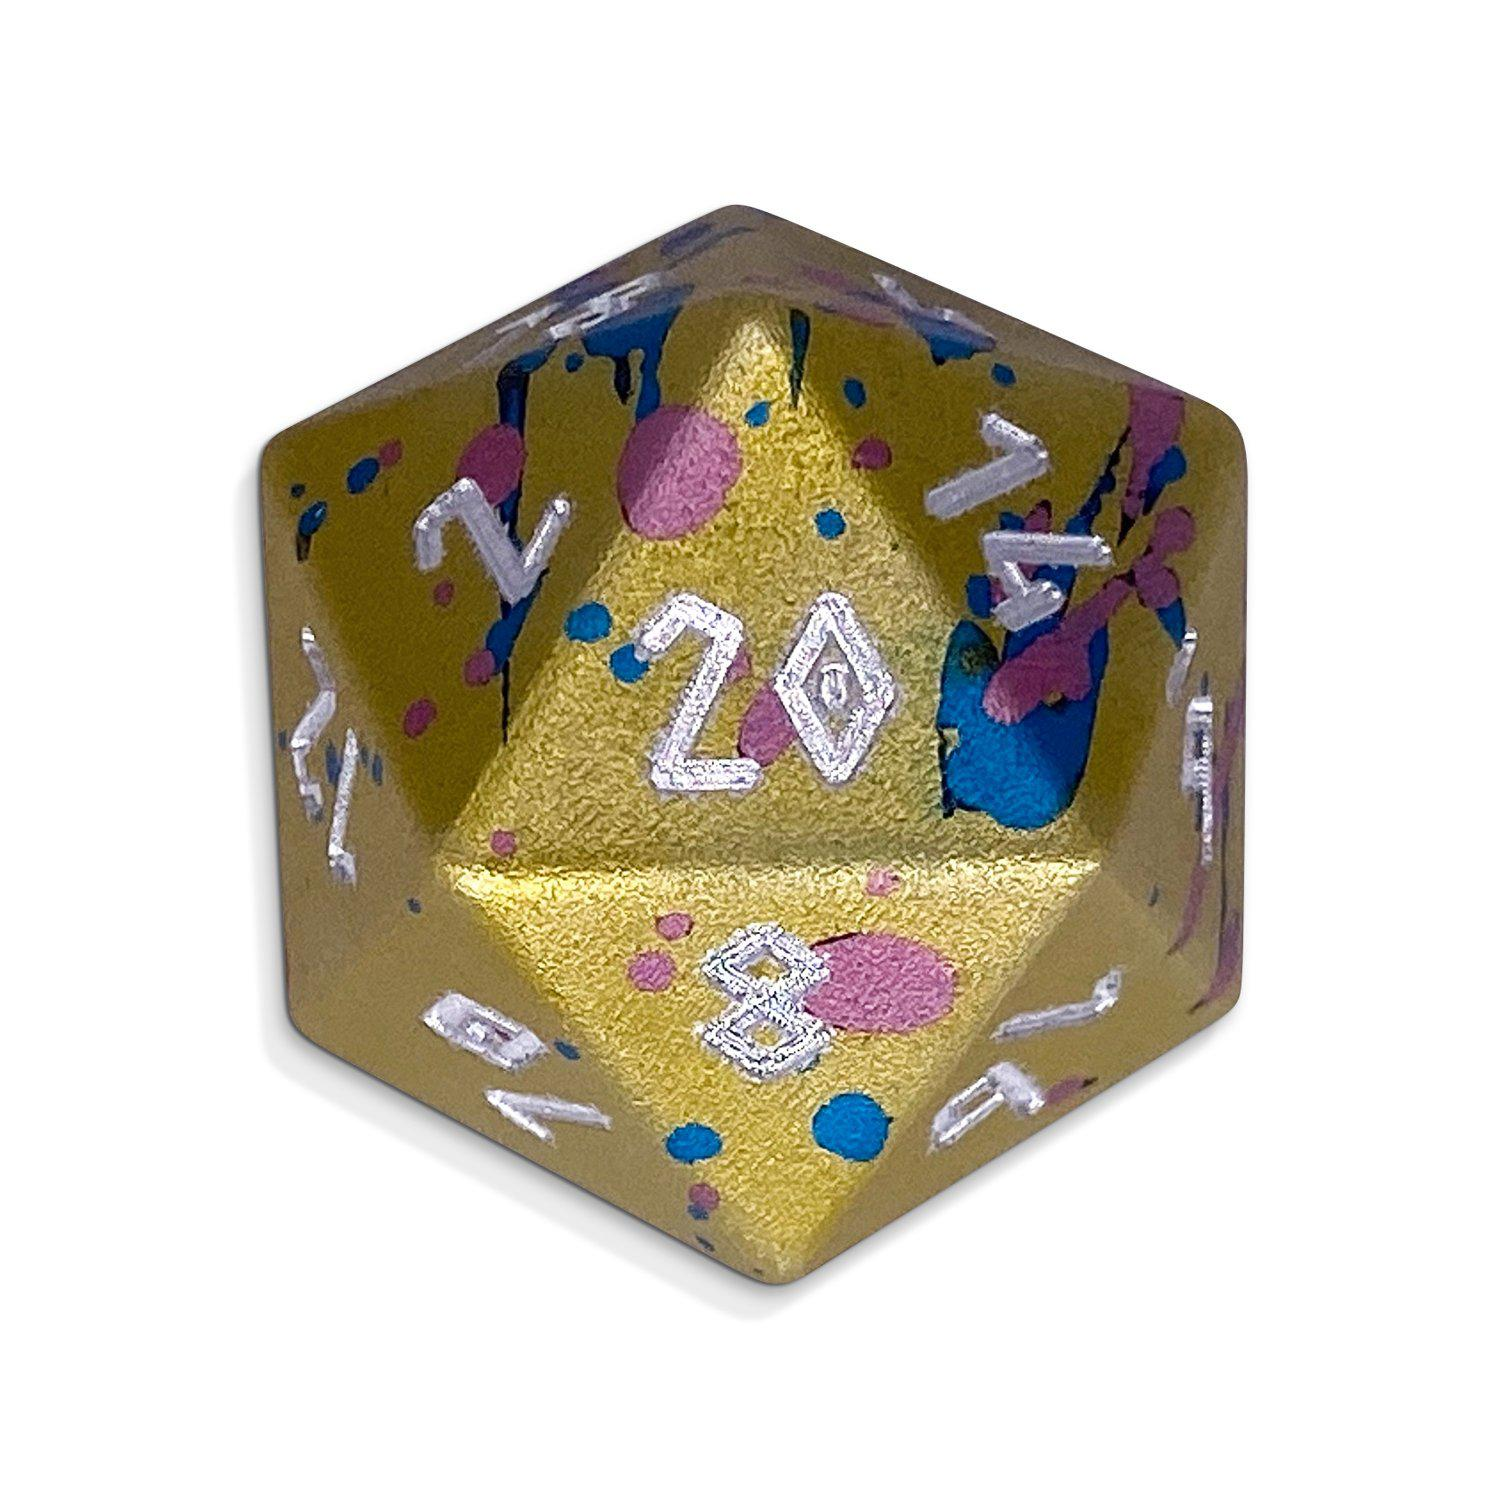 Single Wondrous Dice® D20 in Easter Egg by Norse Foundry 6063 Aircraft Grade Aluminum